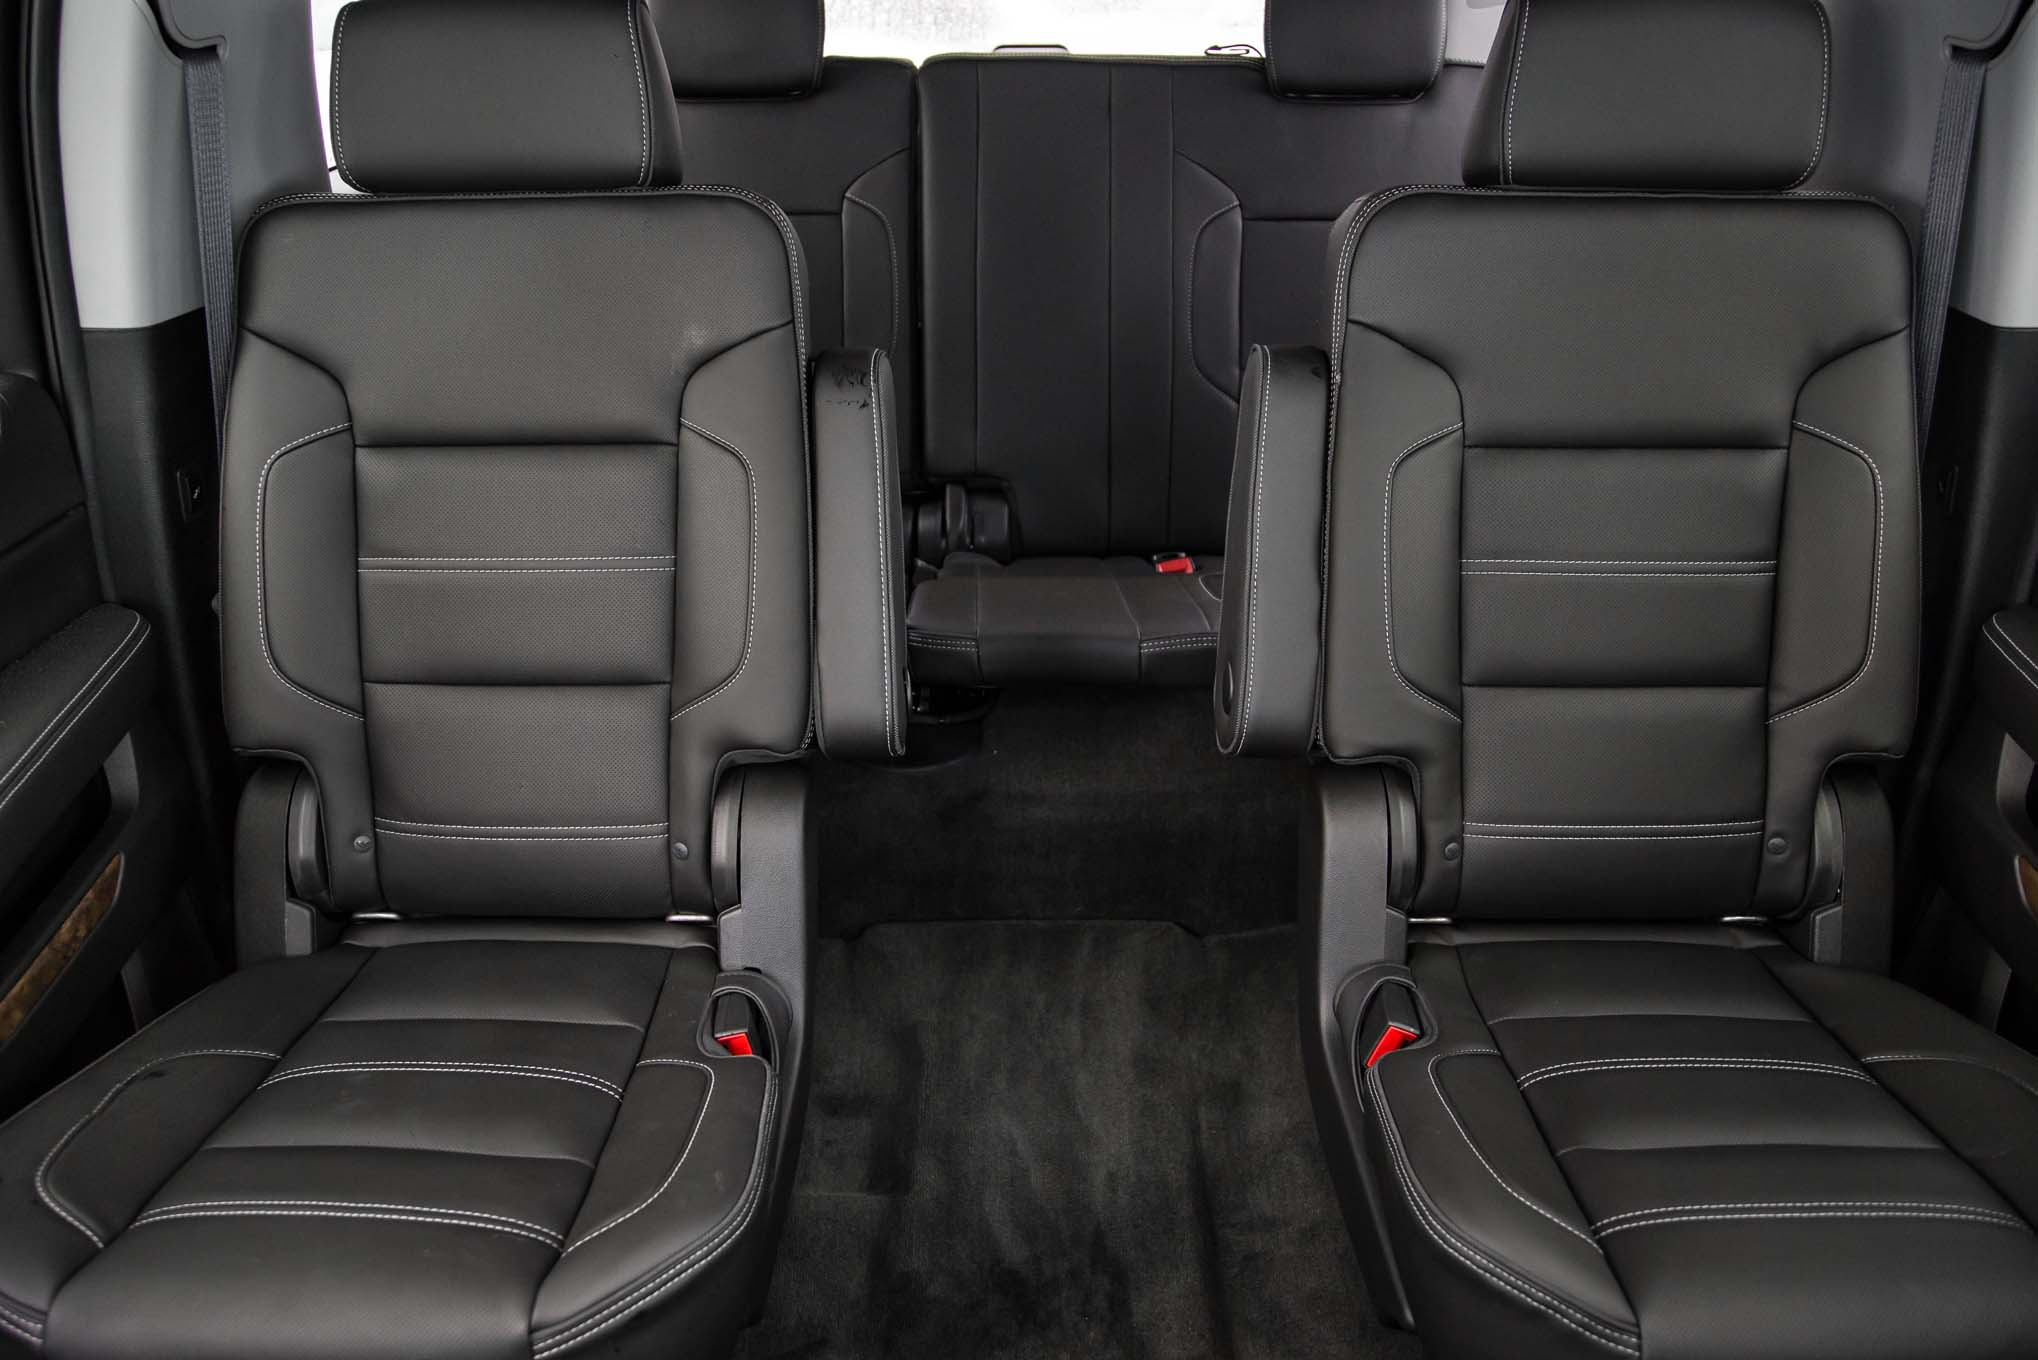 2015 Gmc Yukon Xl Center And Rear Seat Interior (View 5 of 10)